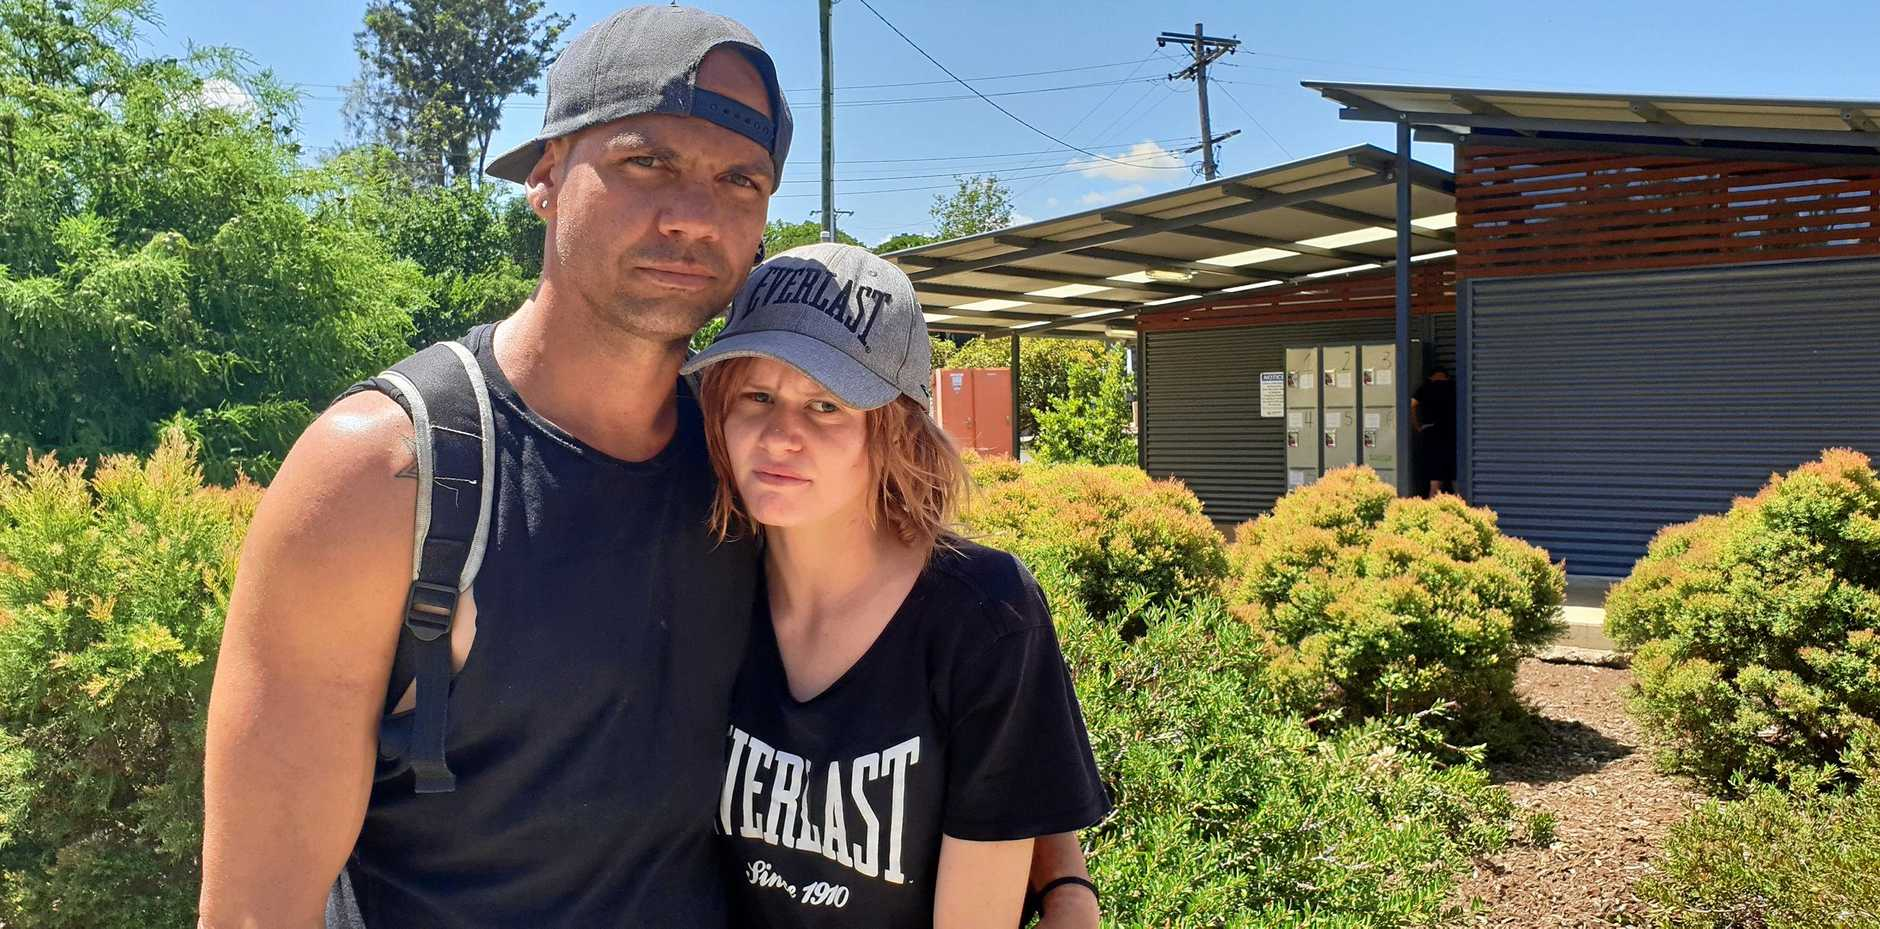 Couple Dayne Lea and Lily-Jo Peacock say life as homeless people has been rough, with services full.